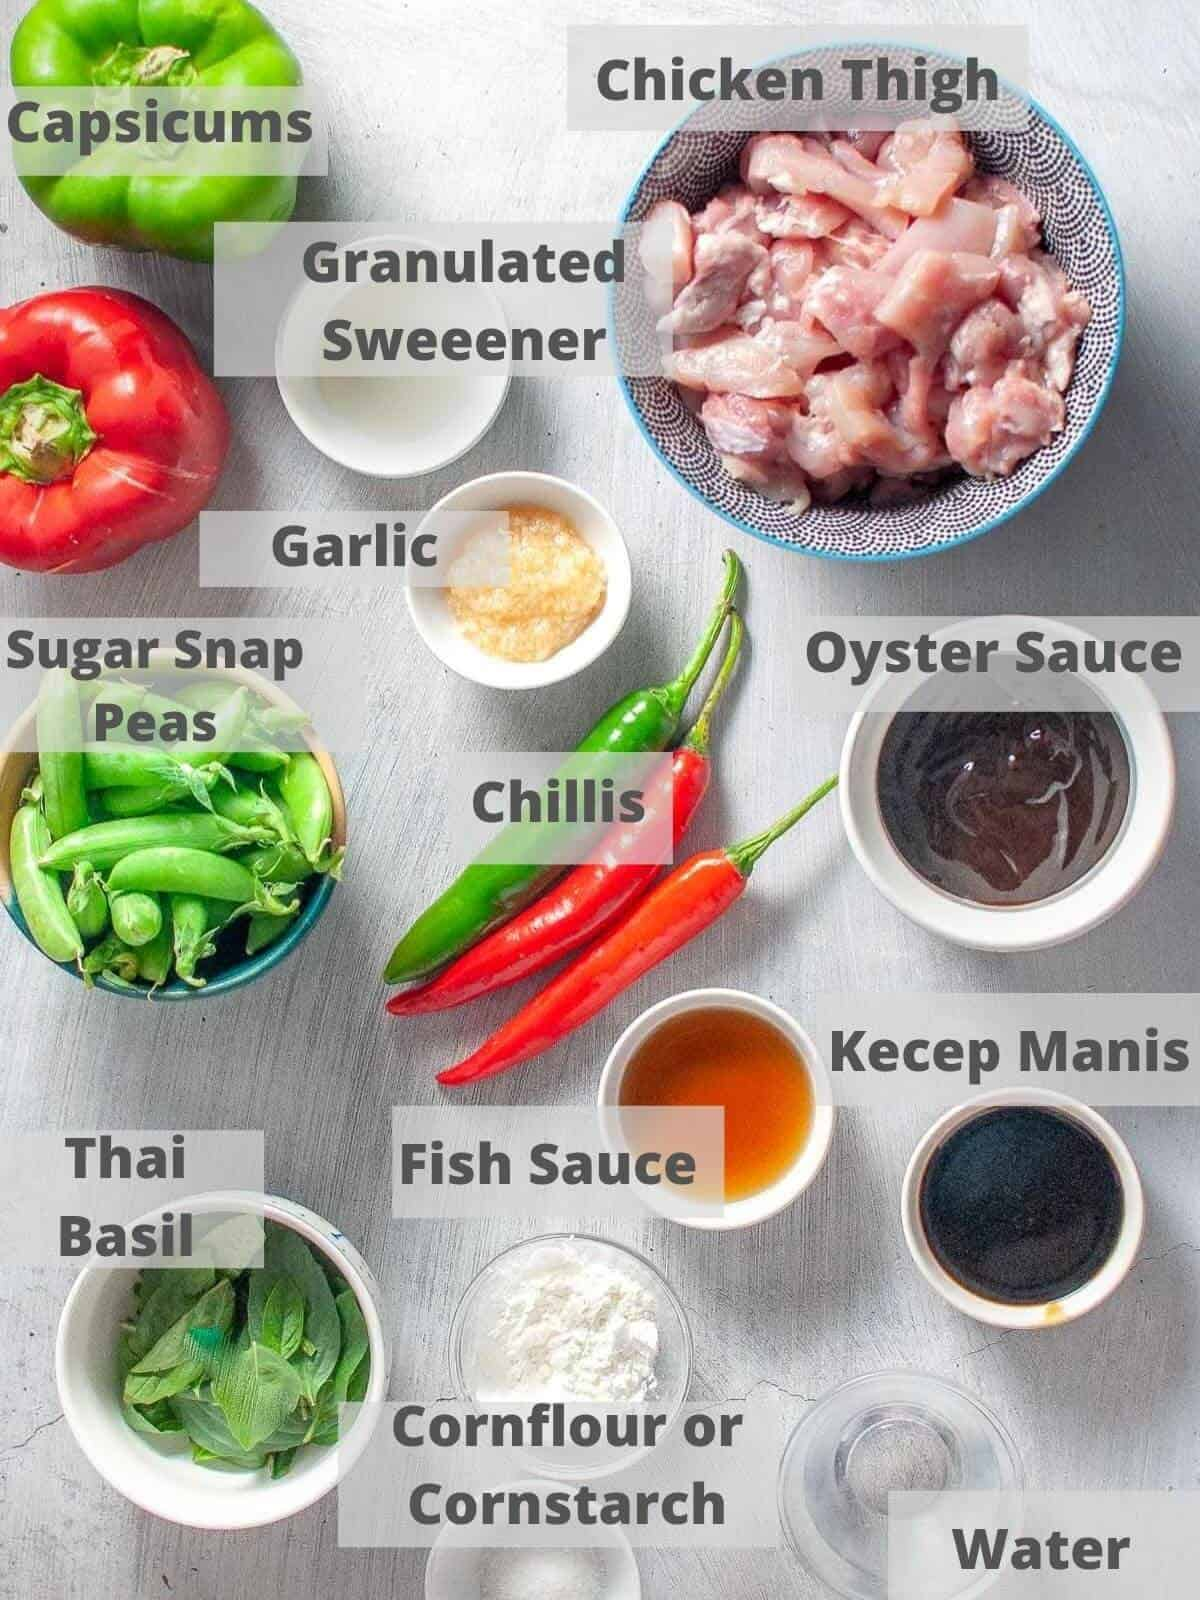 Ingredients for thai basil chicken